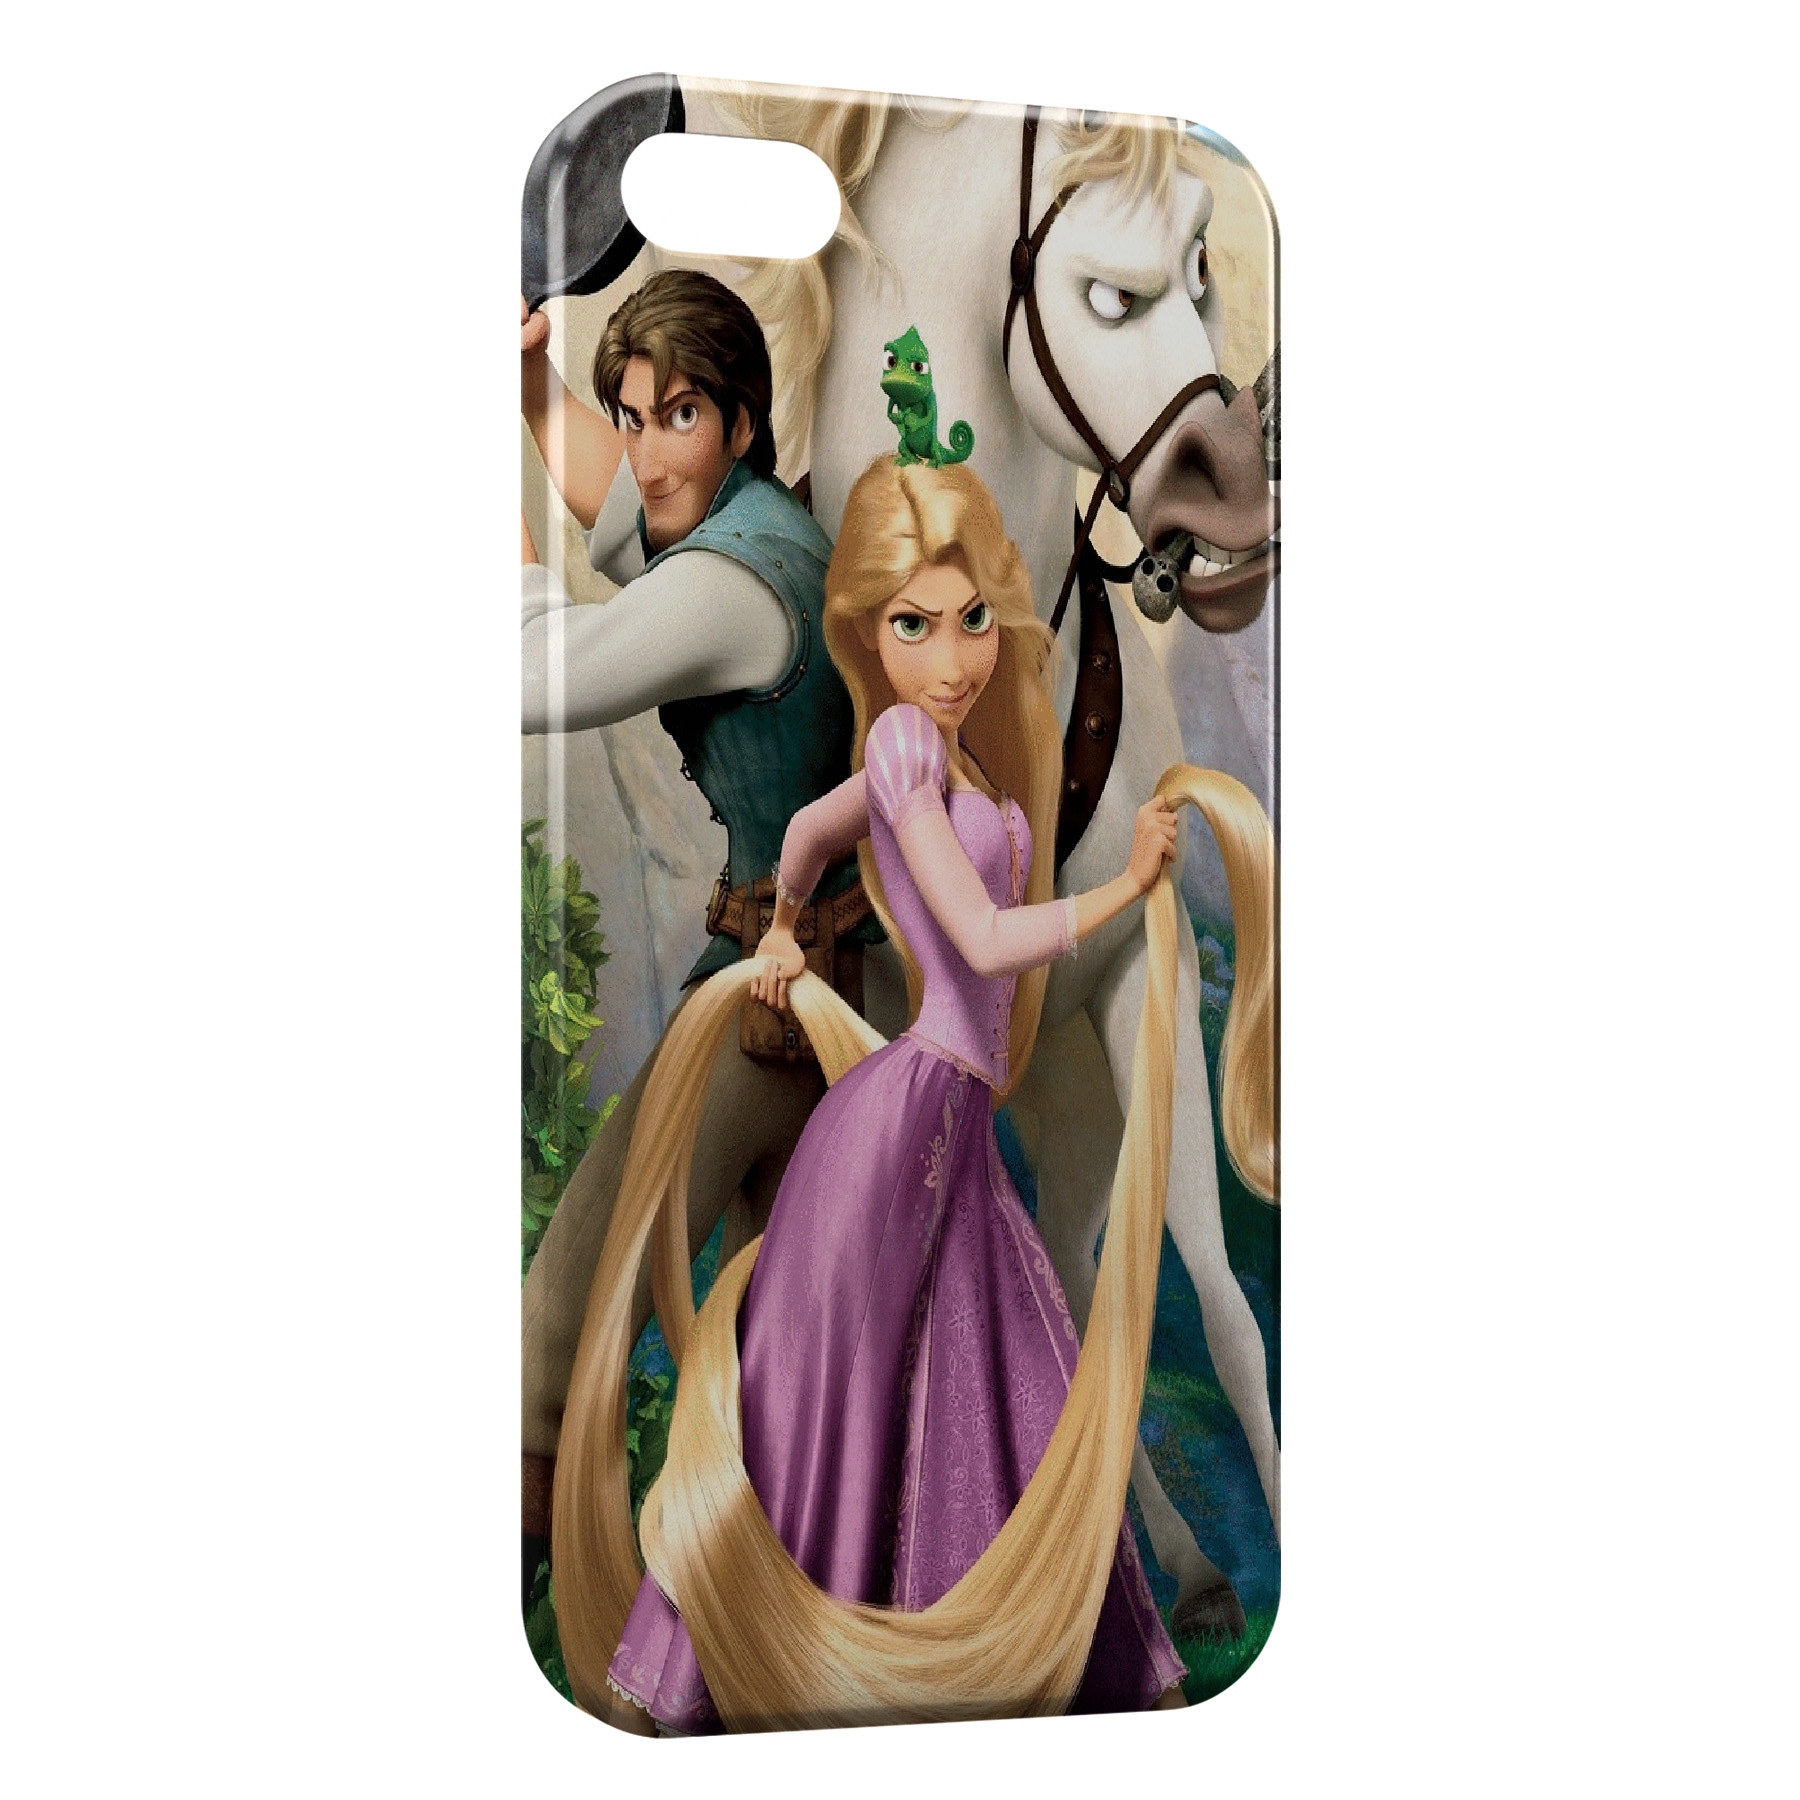 Coque iPhone 6 6S Raiponce Flynn Maximus 2